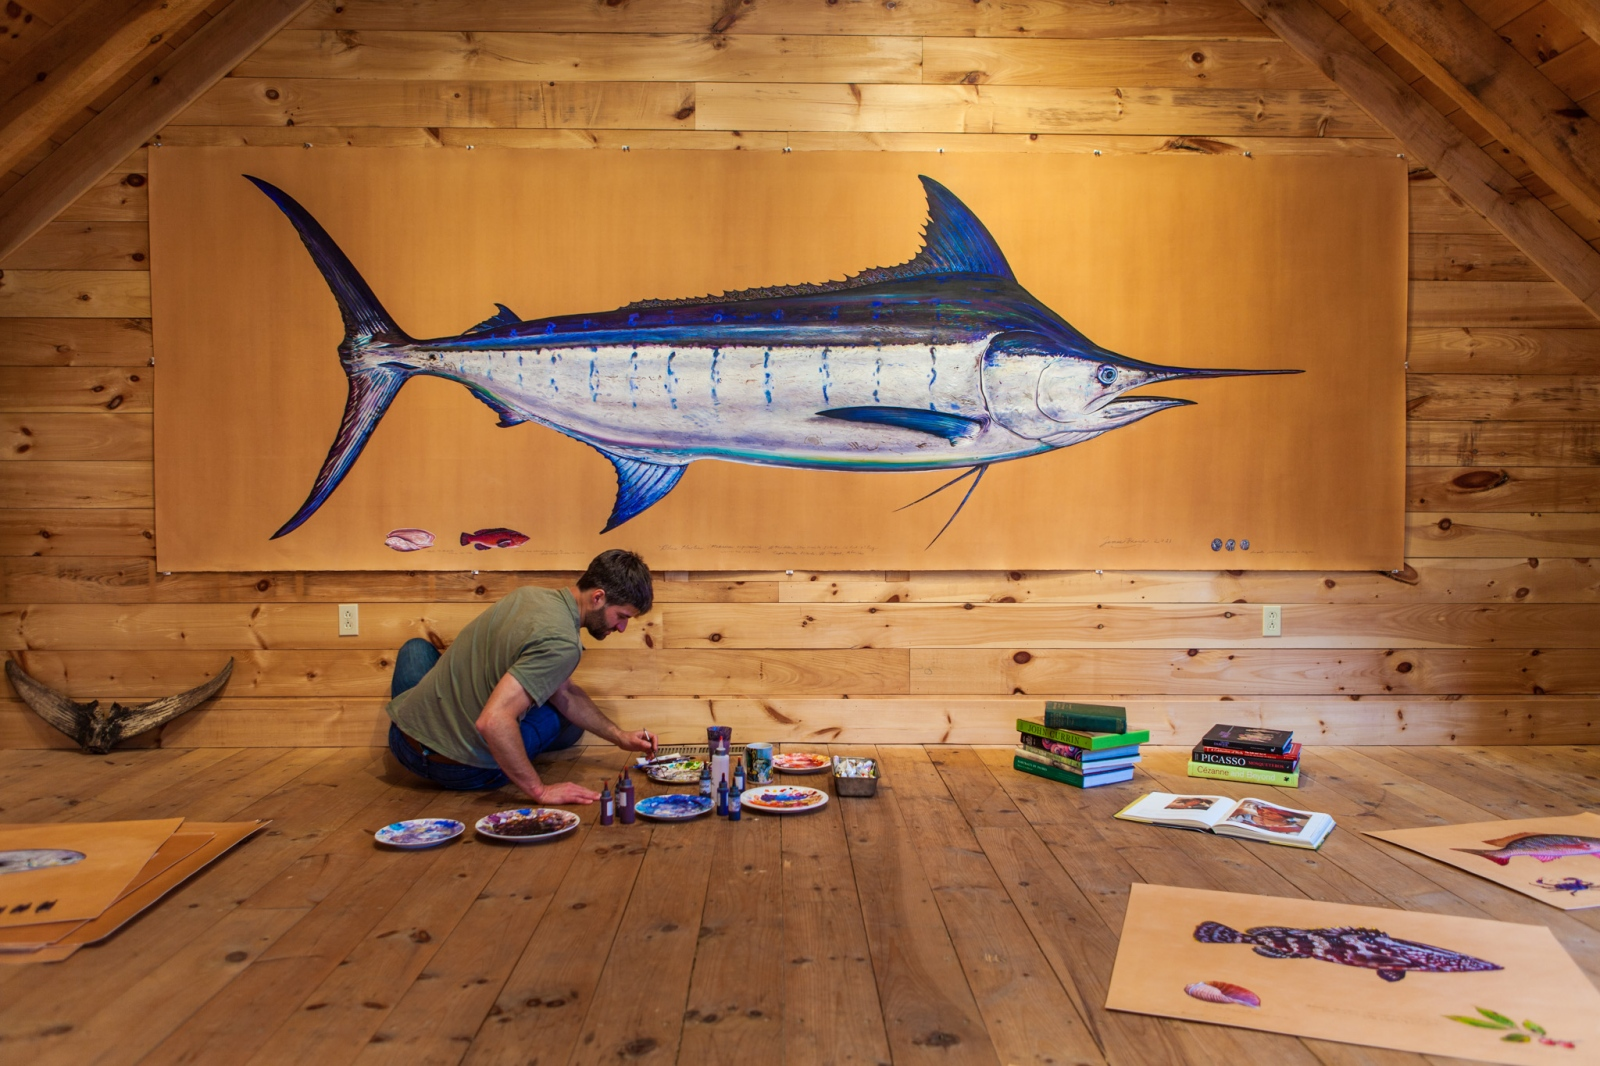 Artist James Prosek in his studio, painting ocean fish lifesized from life. From a cover story for Nature Conservancy Magazine.